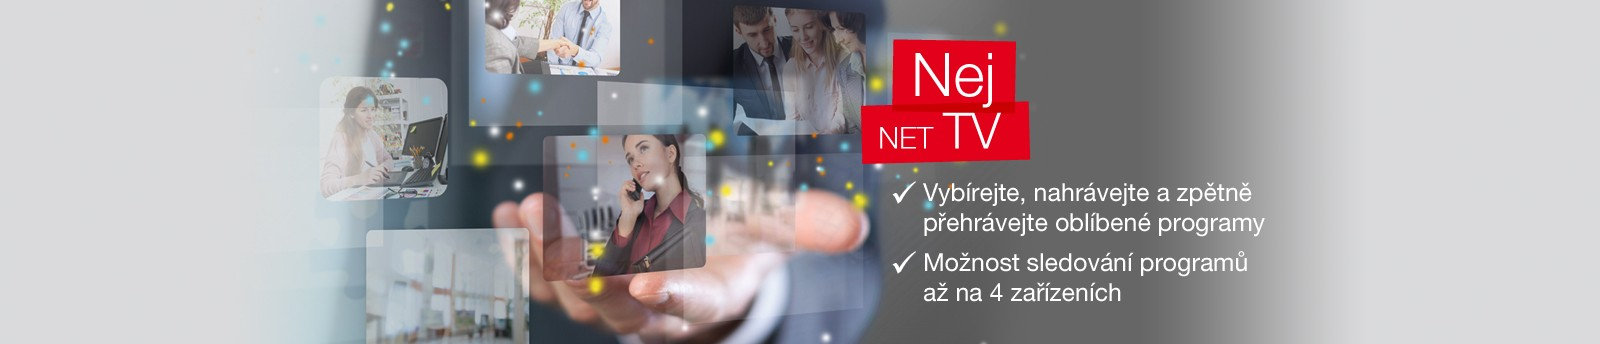 NET TV HP